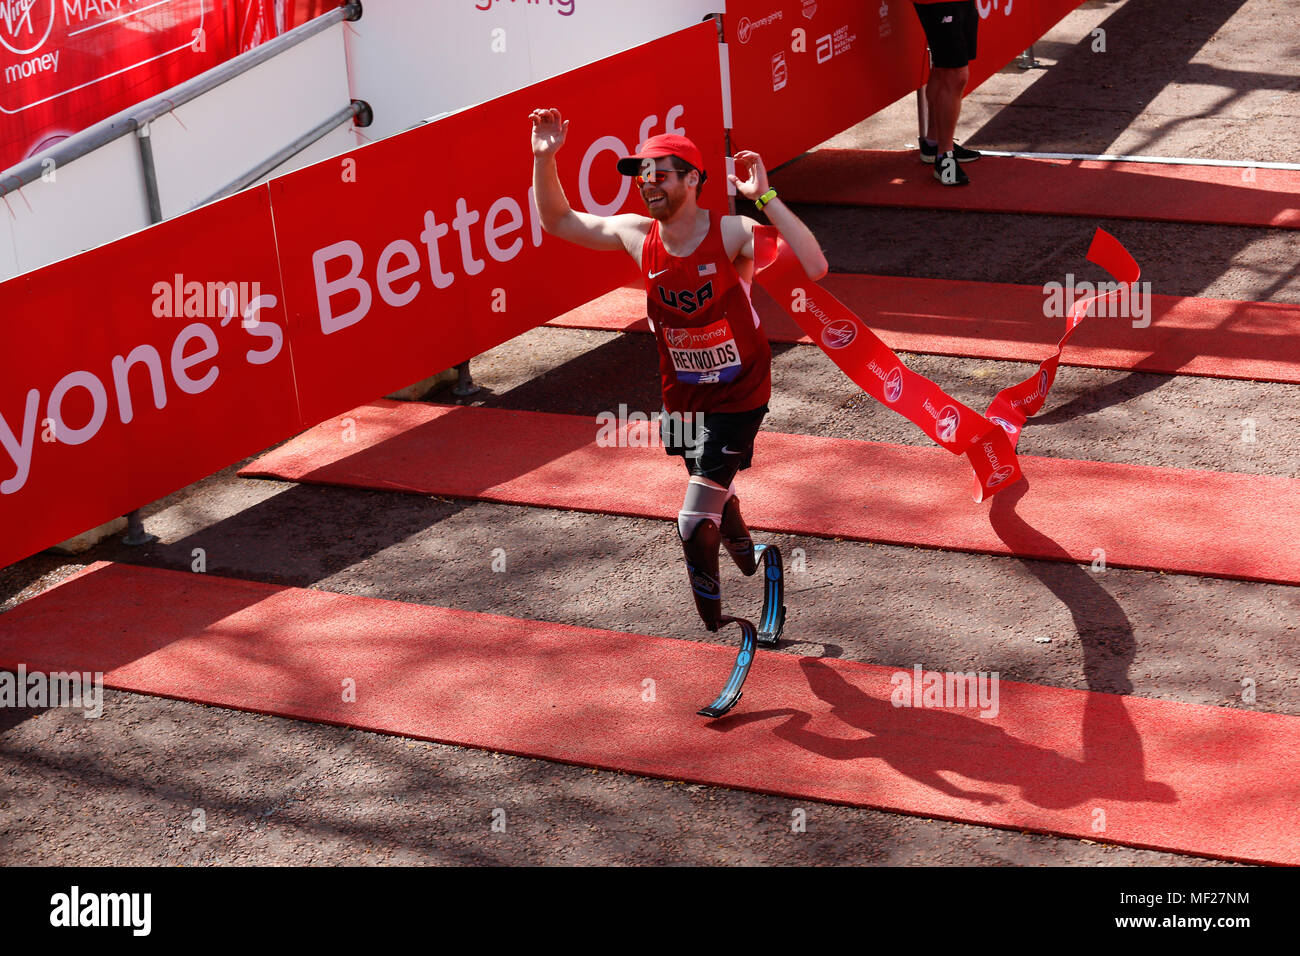 Brian REYNOLDS from USA wins Para-athletics Marathon World Cup for men para-athletes with lower limb impairments during the Virgin Money London Marathon in London, England on April 22, 2018. - Stock Image